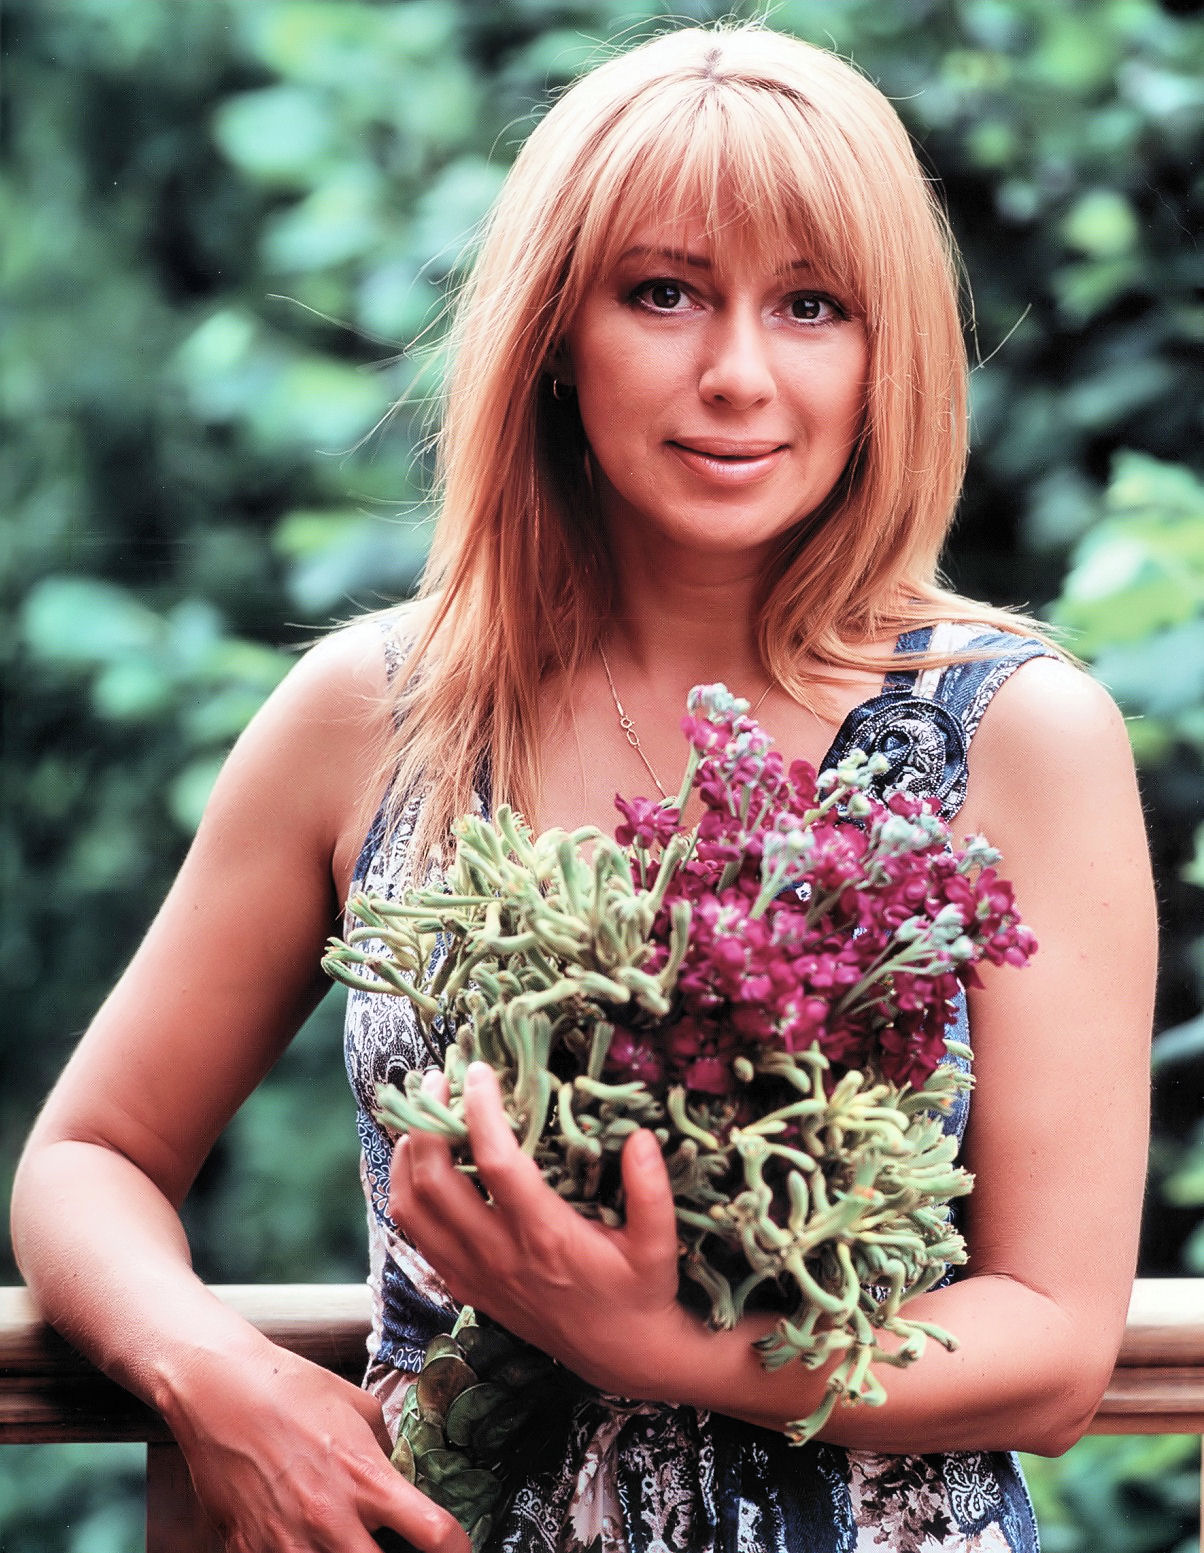 Today Alena Apina is 46 years old 08/23/2010